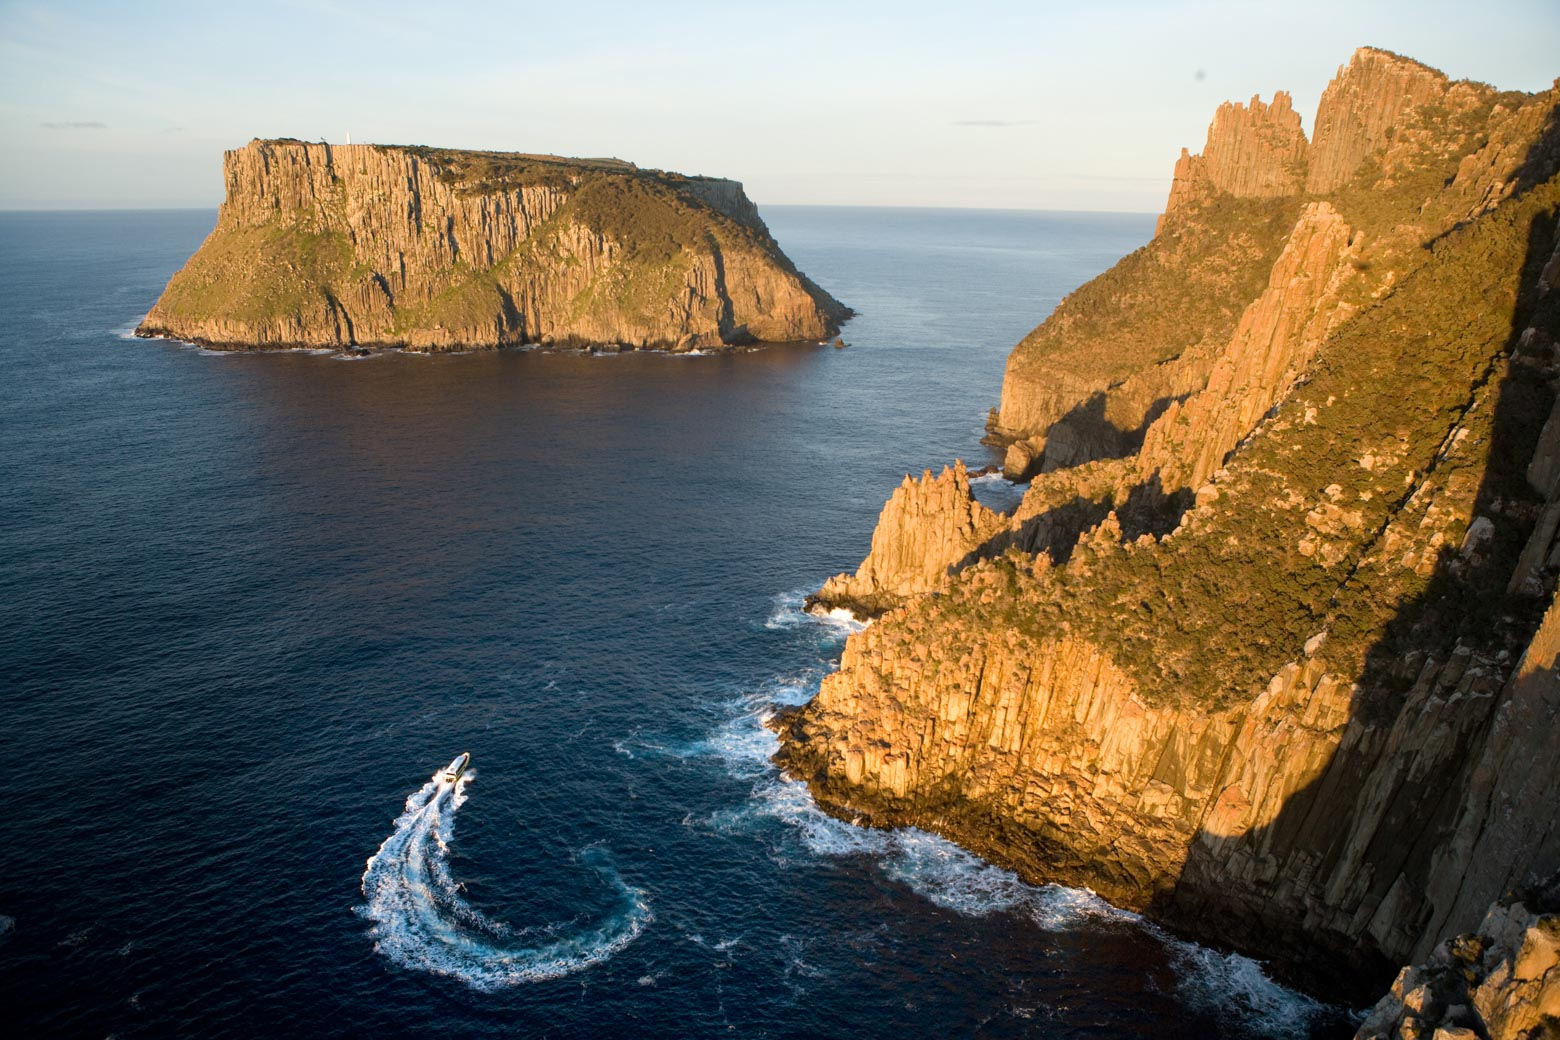 Have fund on a Tasman Island Cruise on your Lap of Tasmania road trip